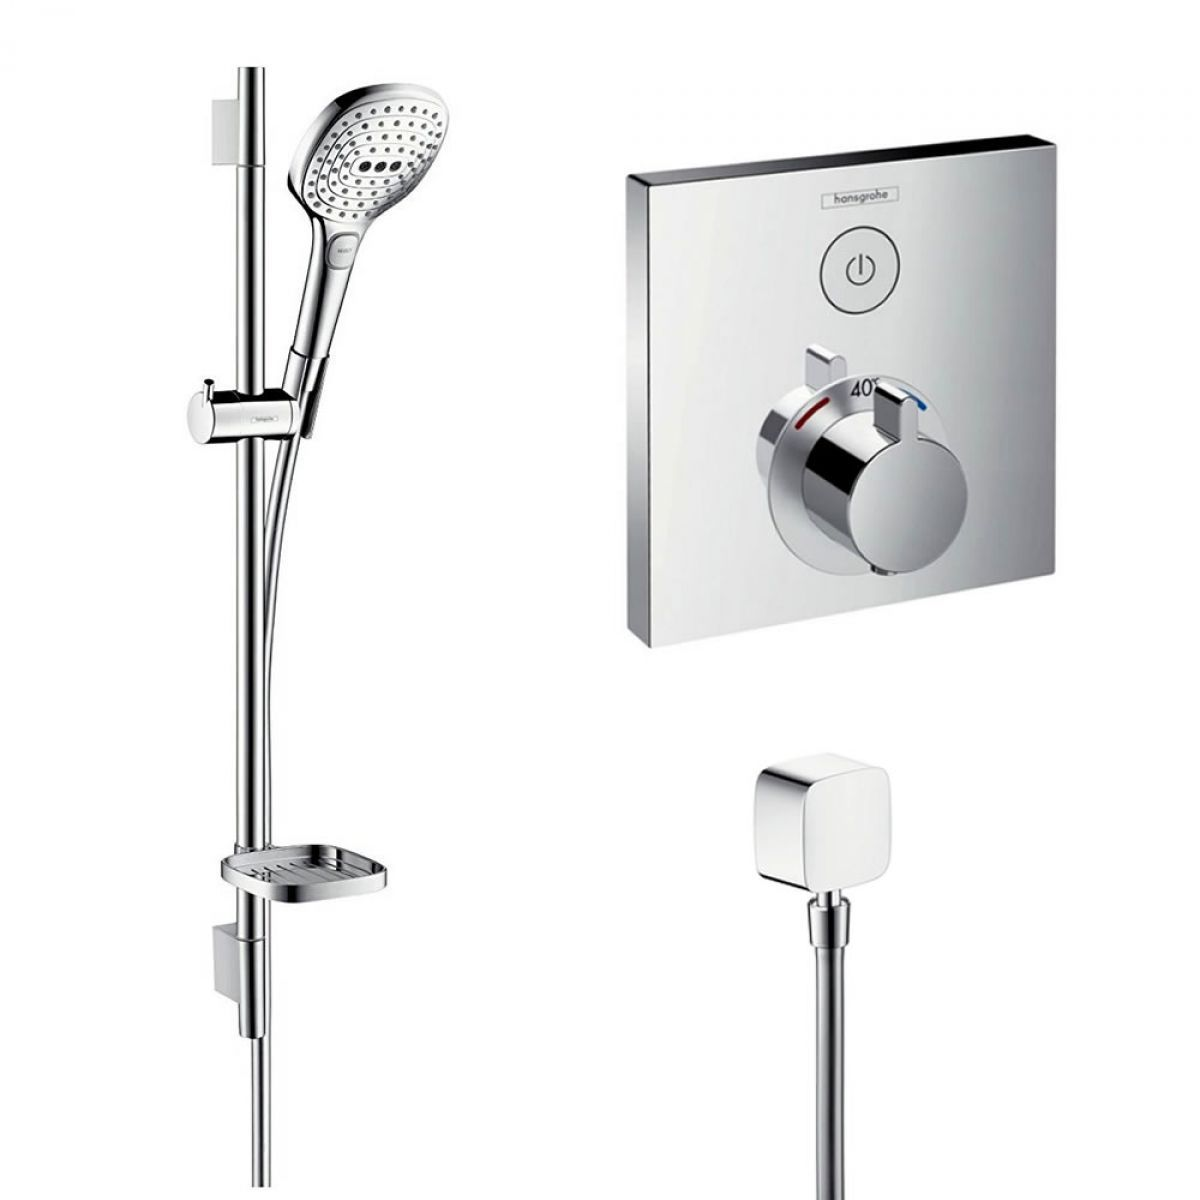 Hansgrohe Raindance Select System 2 Shower Kit In 2020 Shower